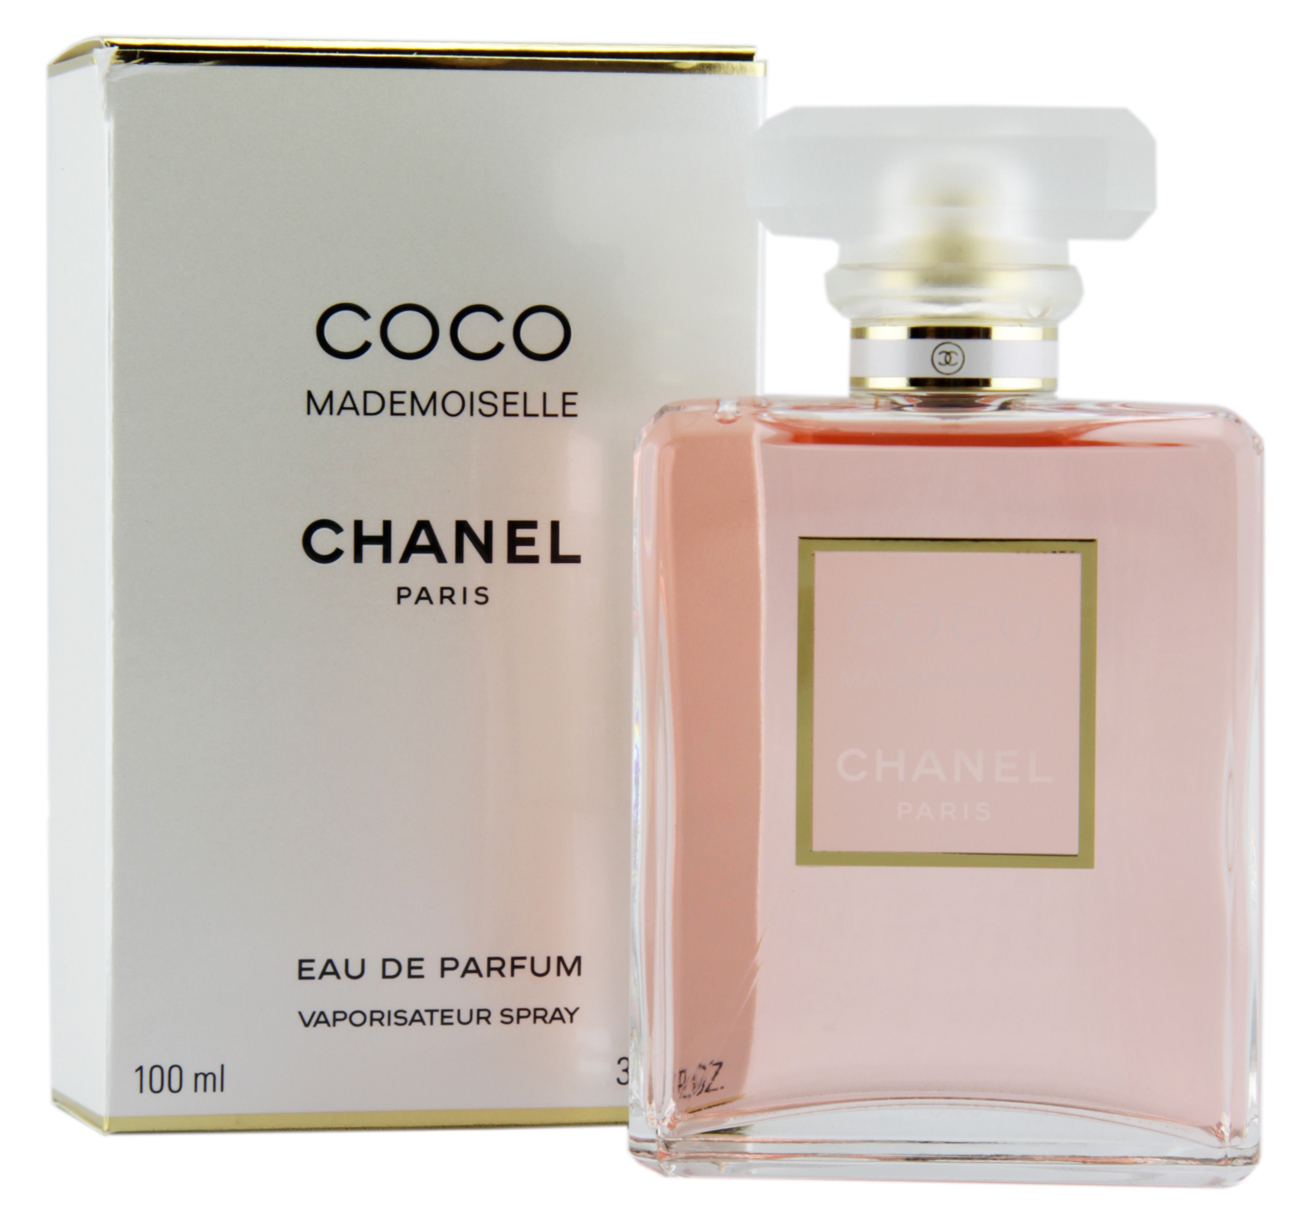 Coco Mademoiselle by Chanel 3.4 oz (100 ml) Eau de Parfum